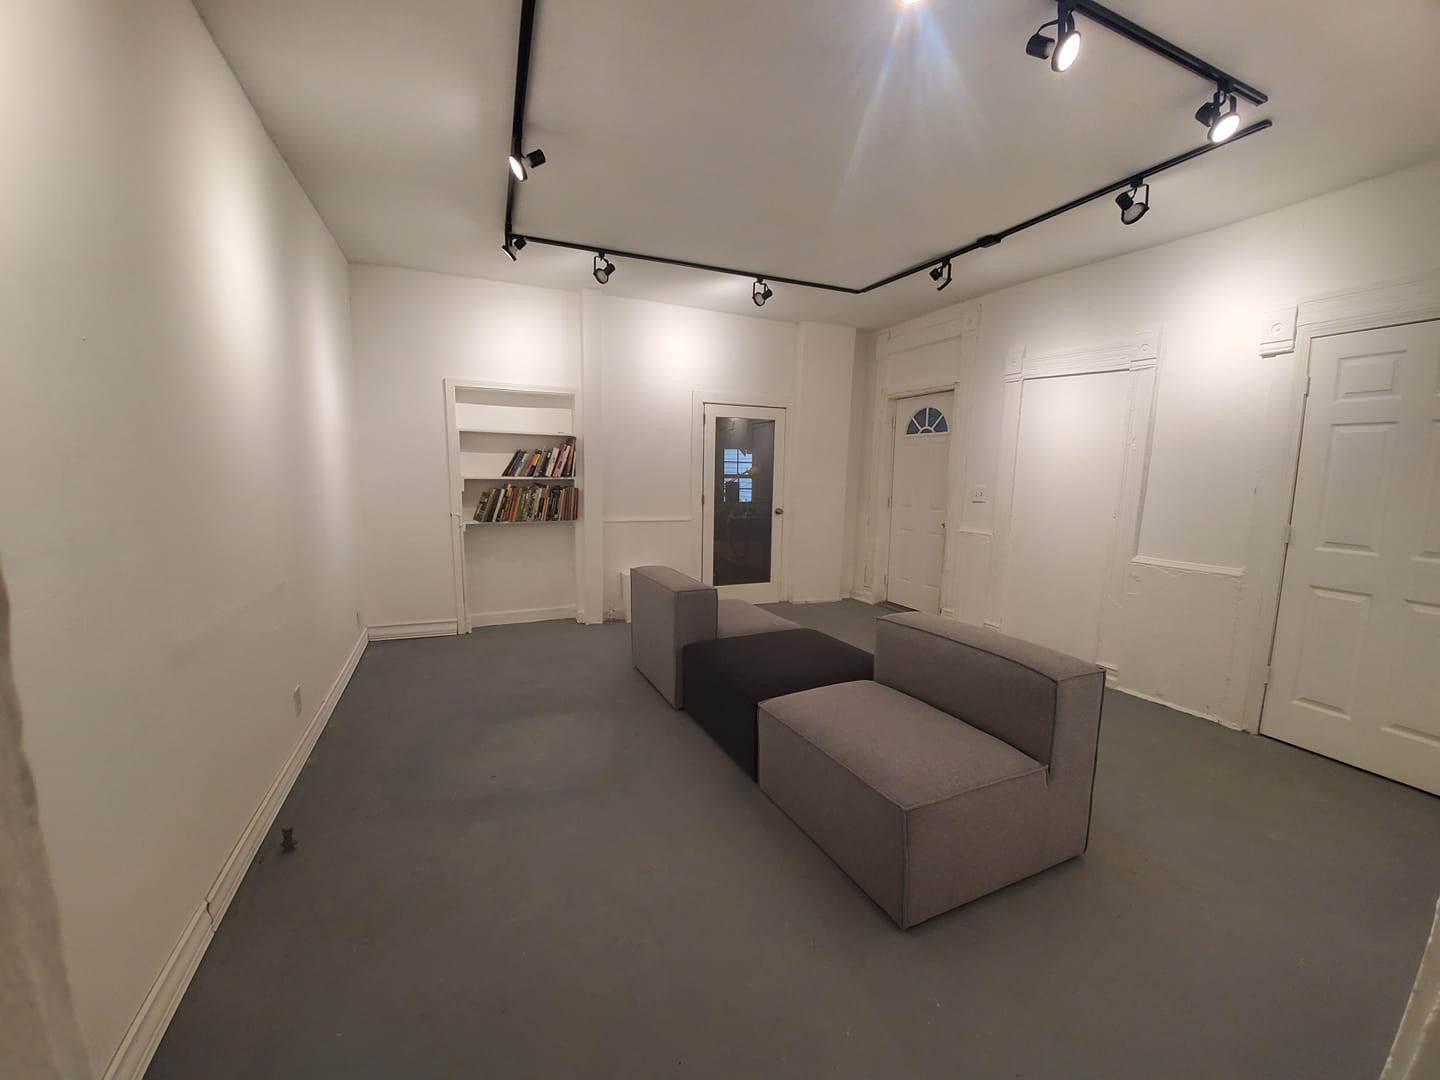 Gallery/classroom space